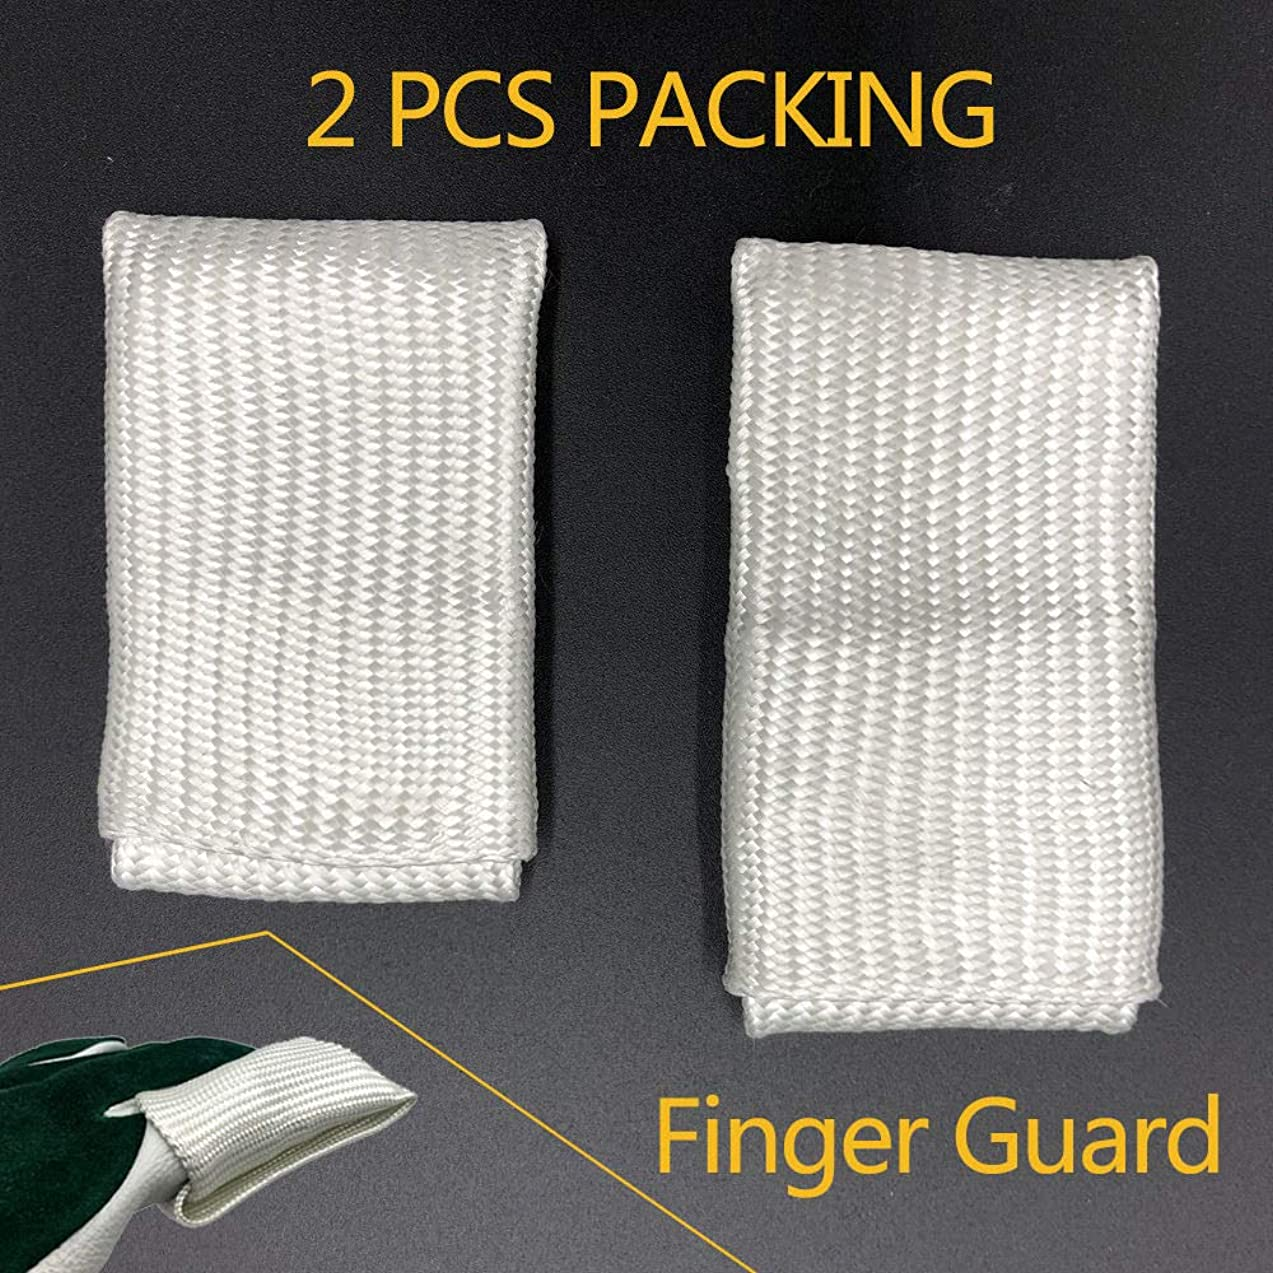 AllyProtect Fiber Glass Welding Tips TIG Finger Heat Shield 2 PCS PACKED (Size L & XL)